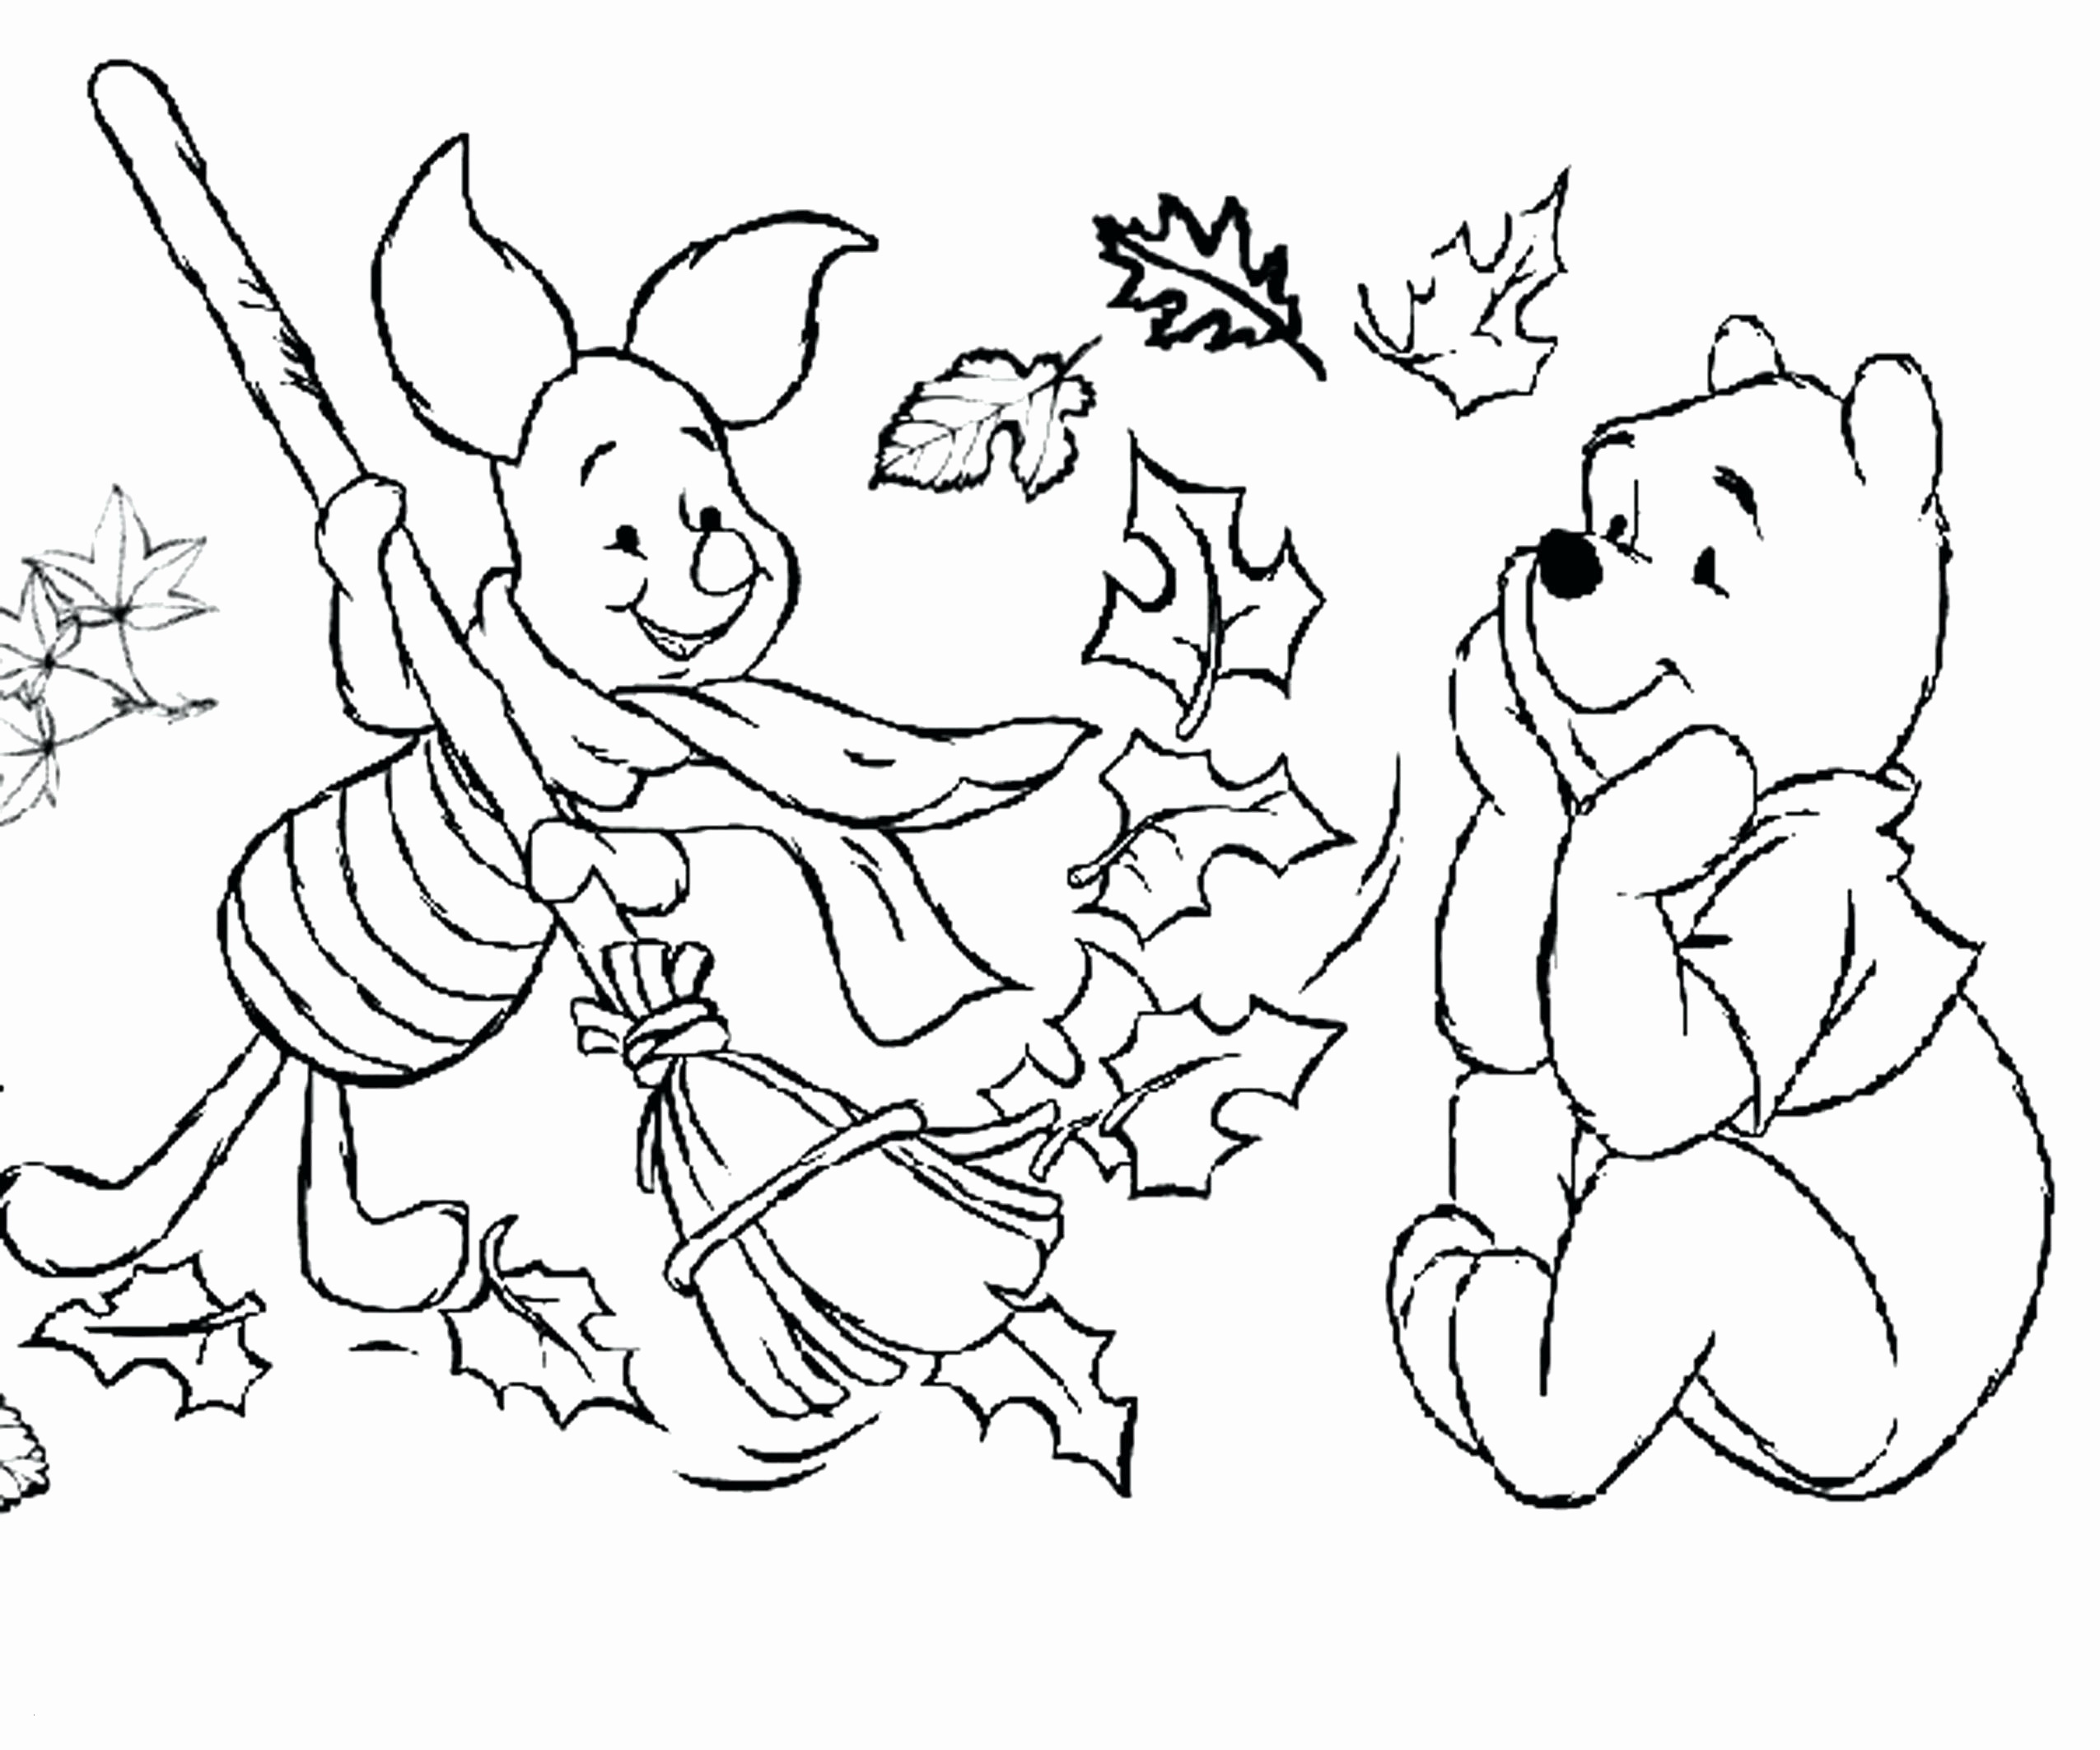 free printable fall coloring pages for preschoolers Download-January Coloring Pages for Preschool Coloring Pages for Children Great Preschool Fall Coloring Pages 0d 5-a